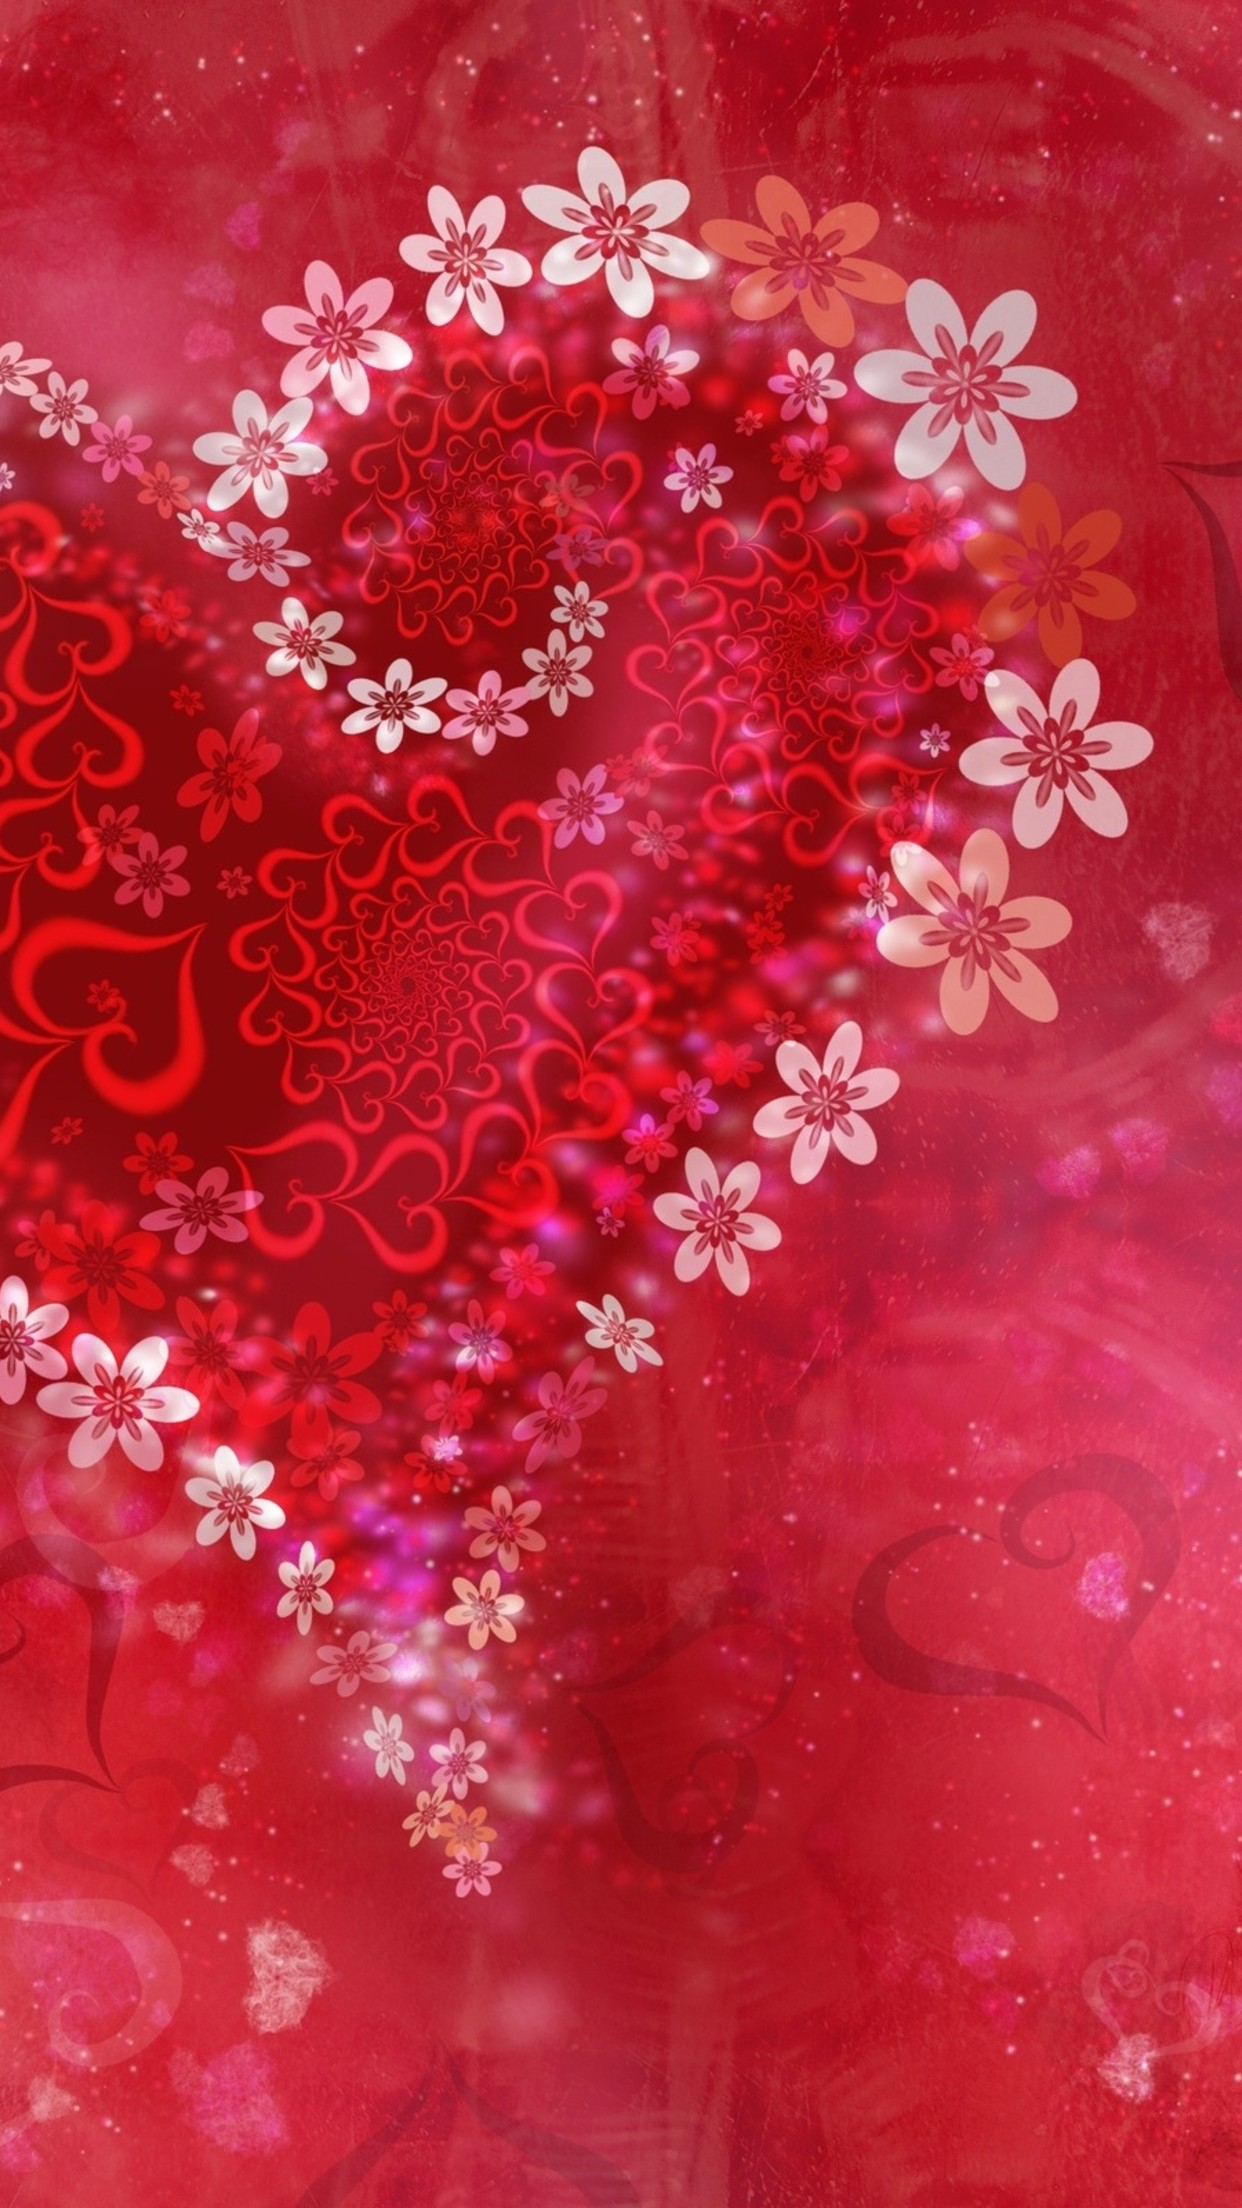 Valentine Day Flower Wallpaper For Iphone X 8 7 6 Free Download